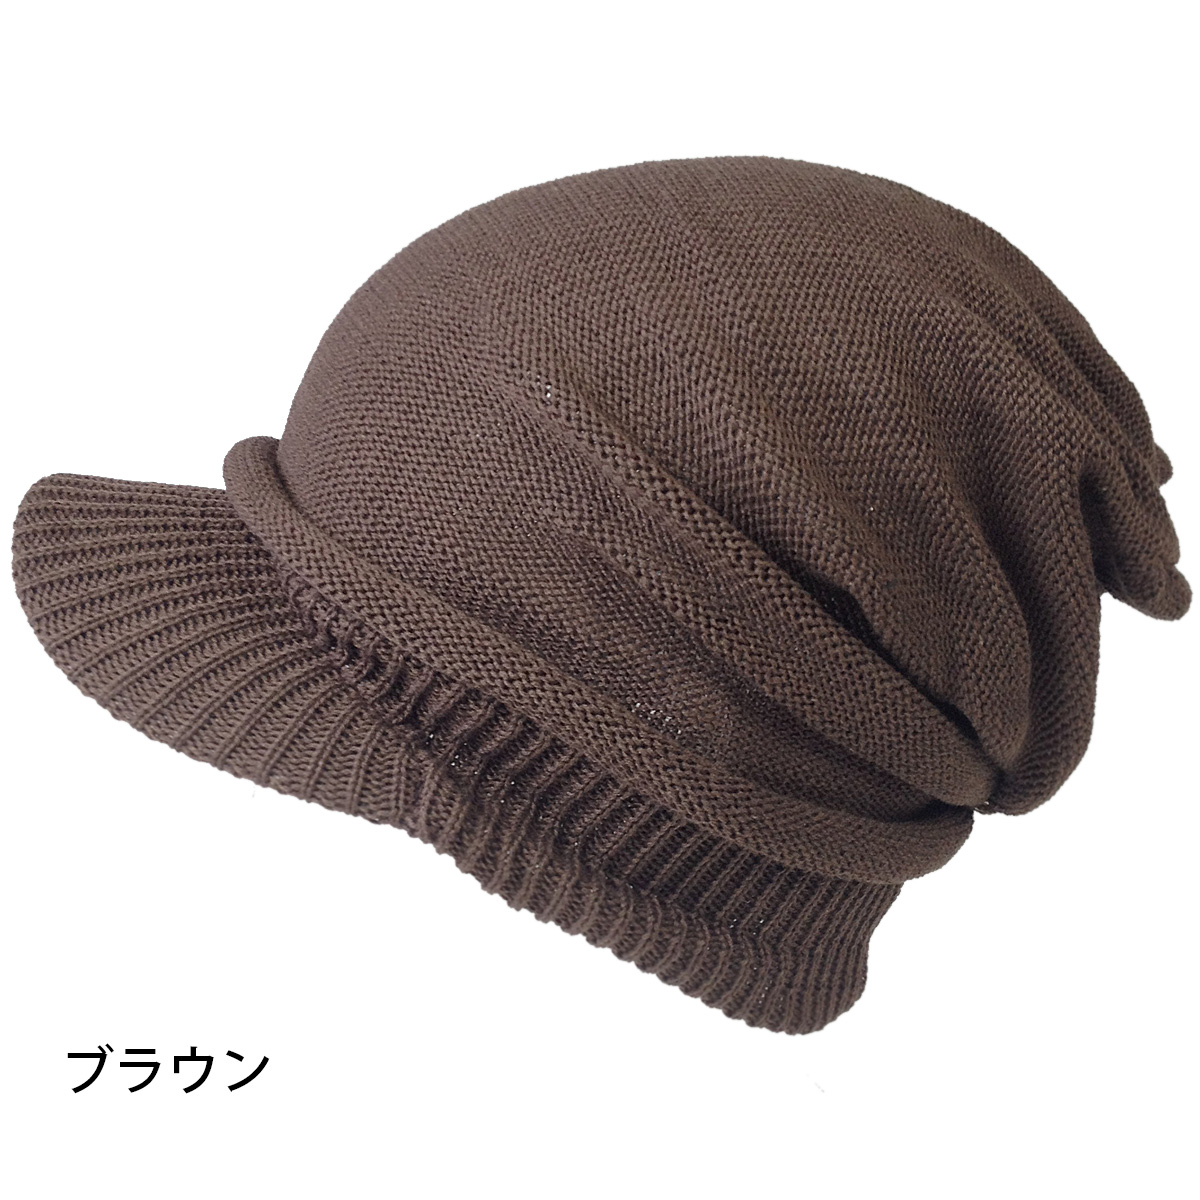 Hats for ladies knit hat! Popular knit Cap Hat! Women's men's knit Cap spring summer summer UV Hat hats ladies small face effect men's hat UV measures スプリングサマー J knit Cap Hat women's knit hat